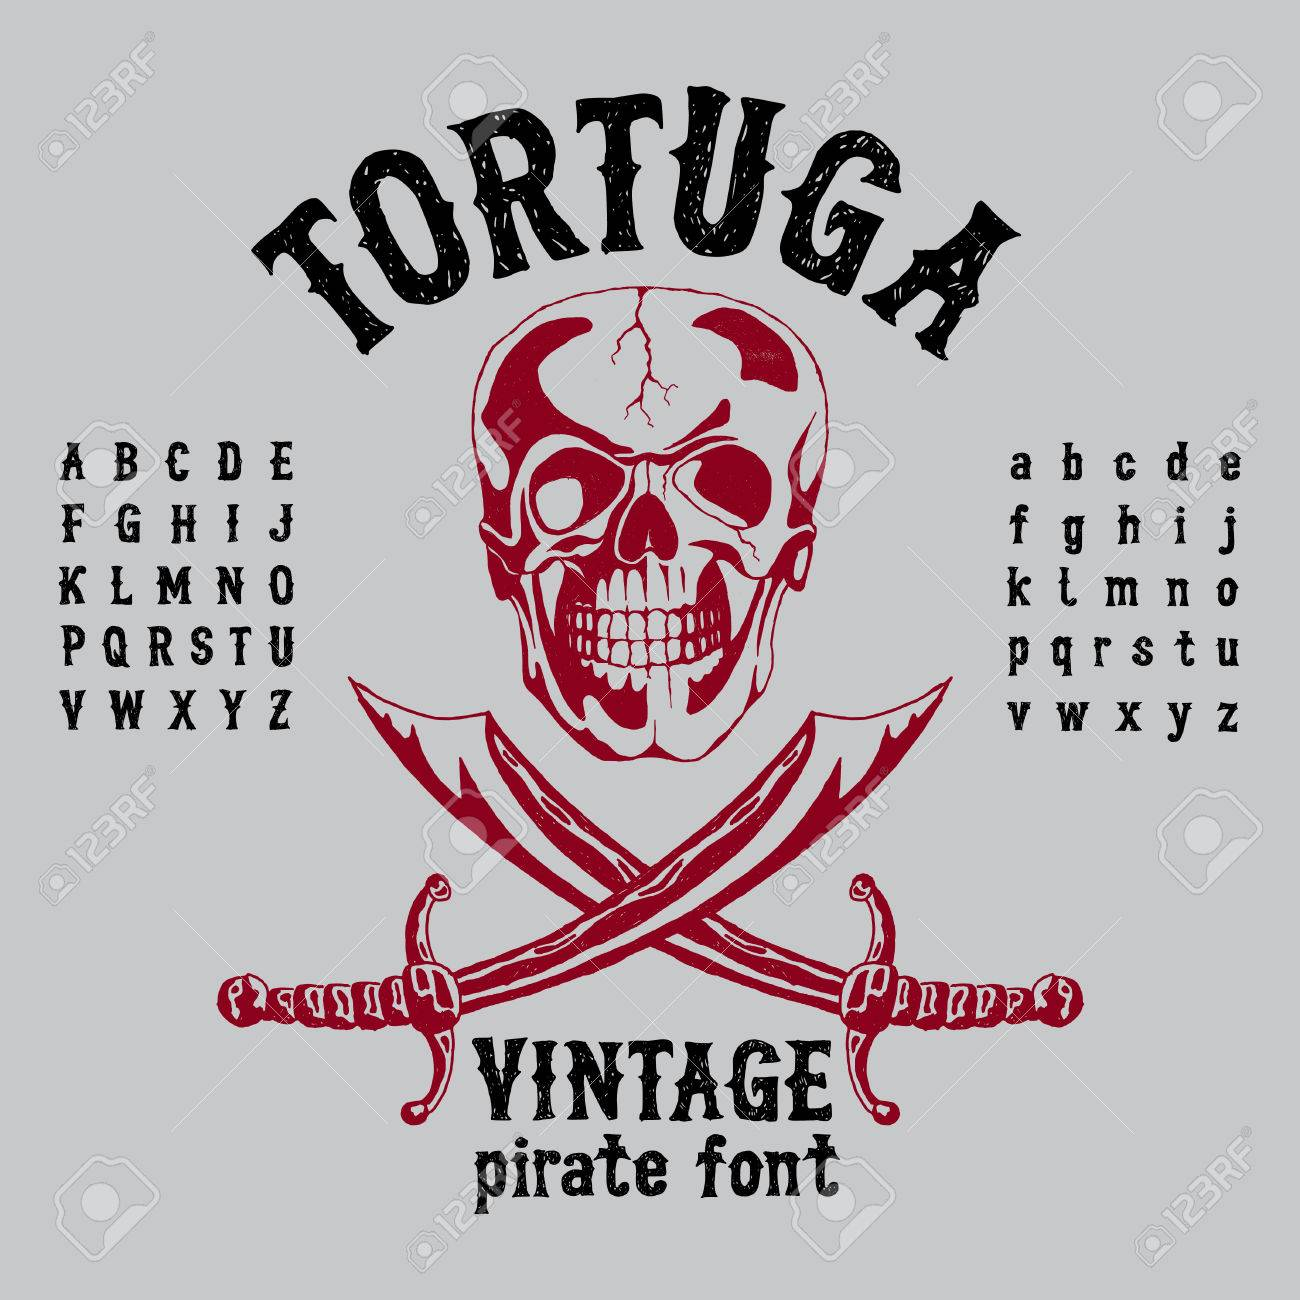 Tortuga Vintage Pirate Font Poster With Angry Skull And Alphabet On Grey Background Vector Illustration Stock